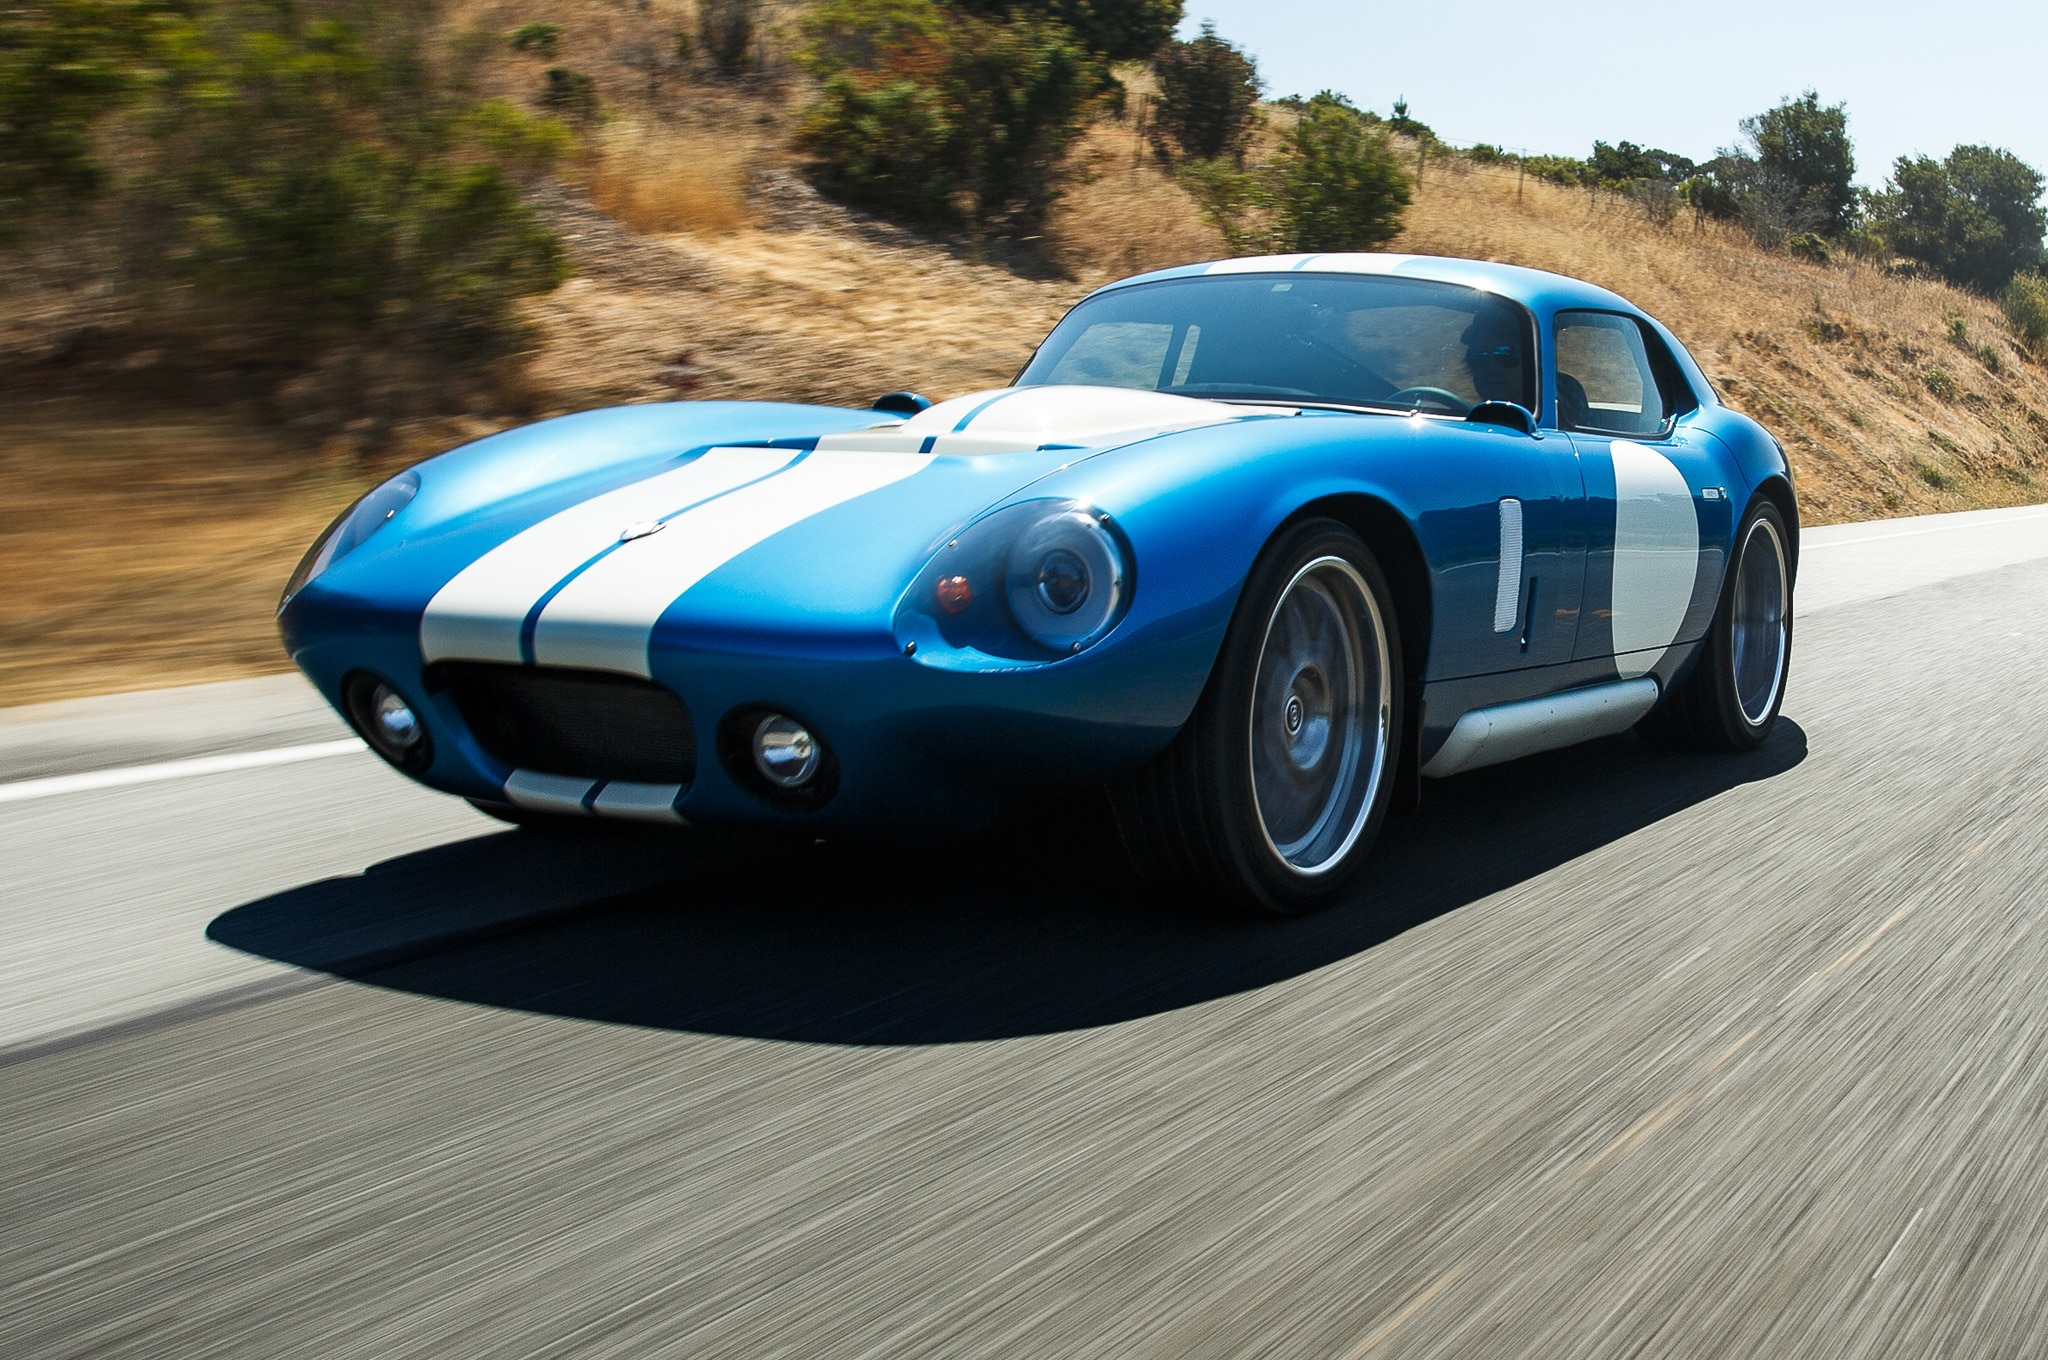 2015 Renovo Coupe In Motion Closer View1